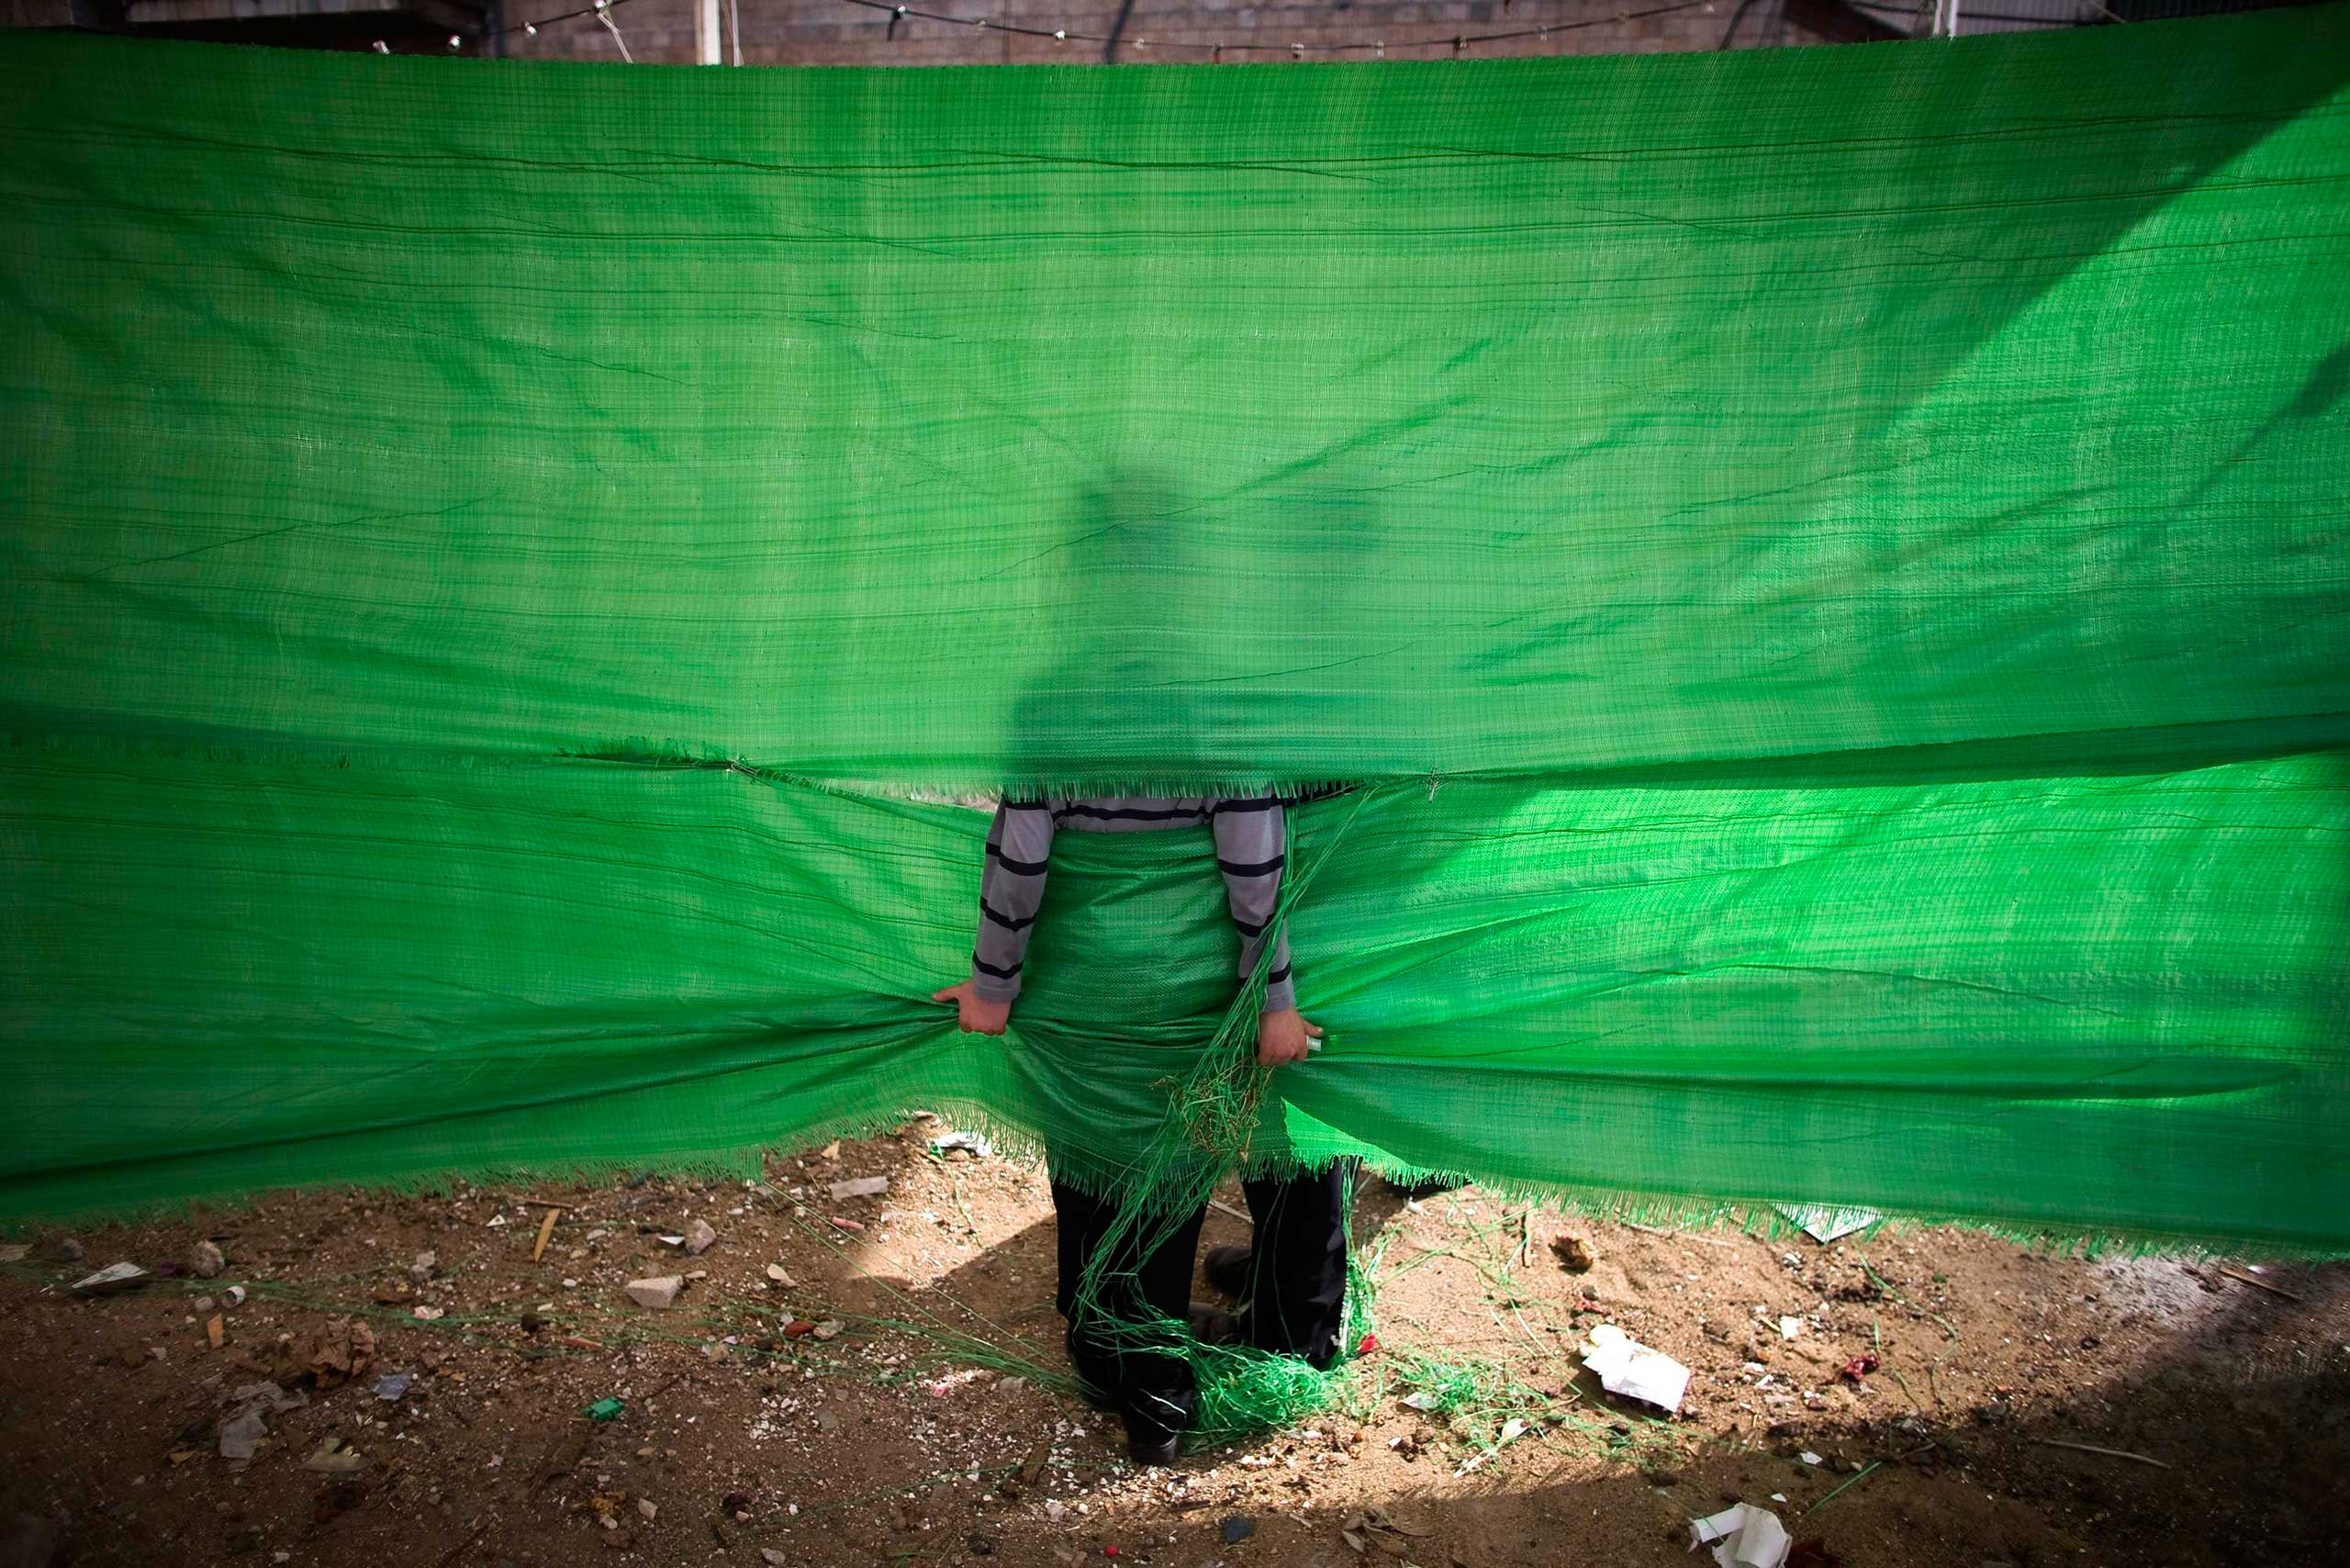 Oct. 1, 2014. An ultra-Orthodox Jewish boy holds on to a tarp in Jerusalem's Mea Shearim neighborhood ahead of Yom Kippur, the Jewish Day of Atonement, which starts at sundown on Friday.